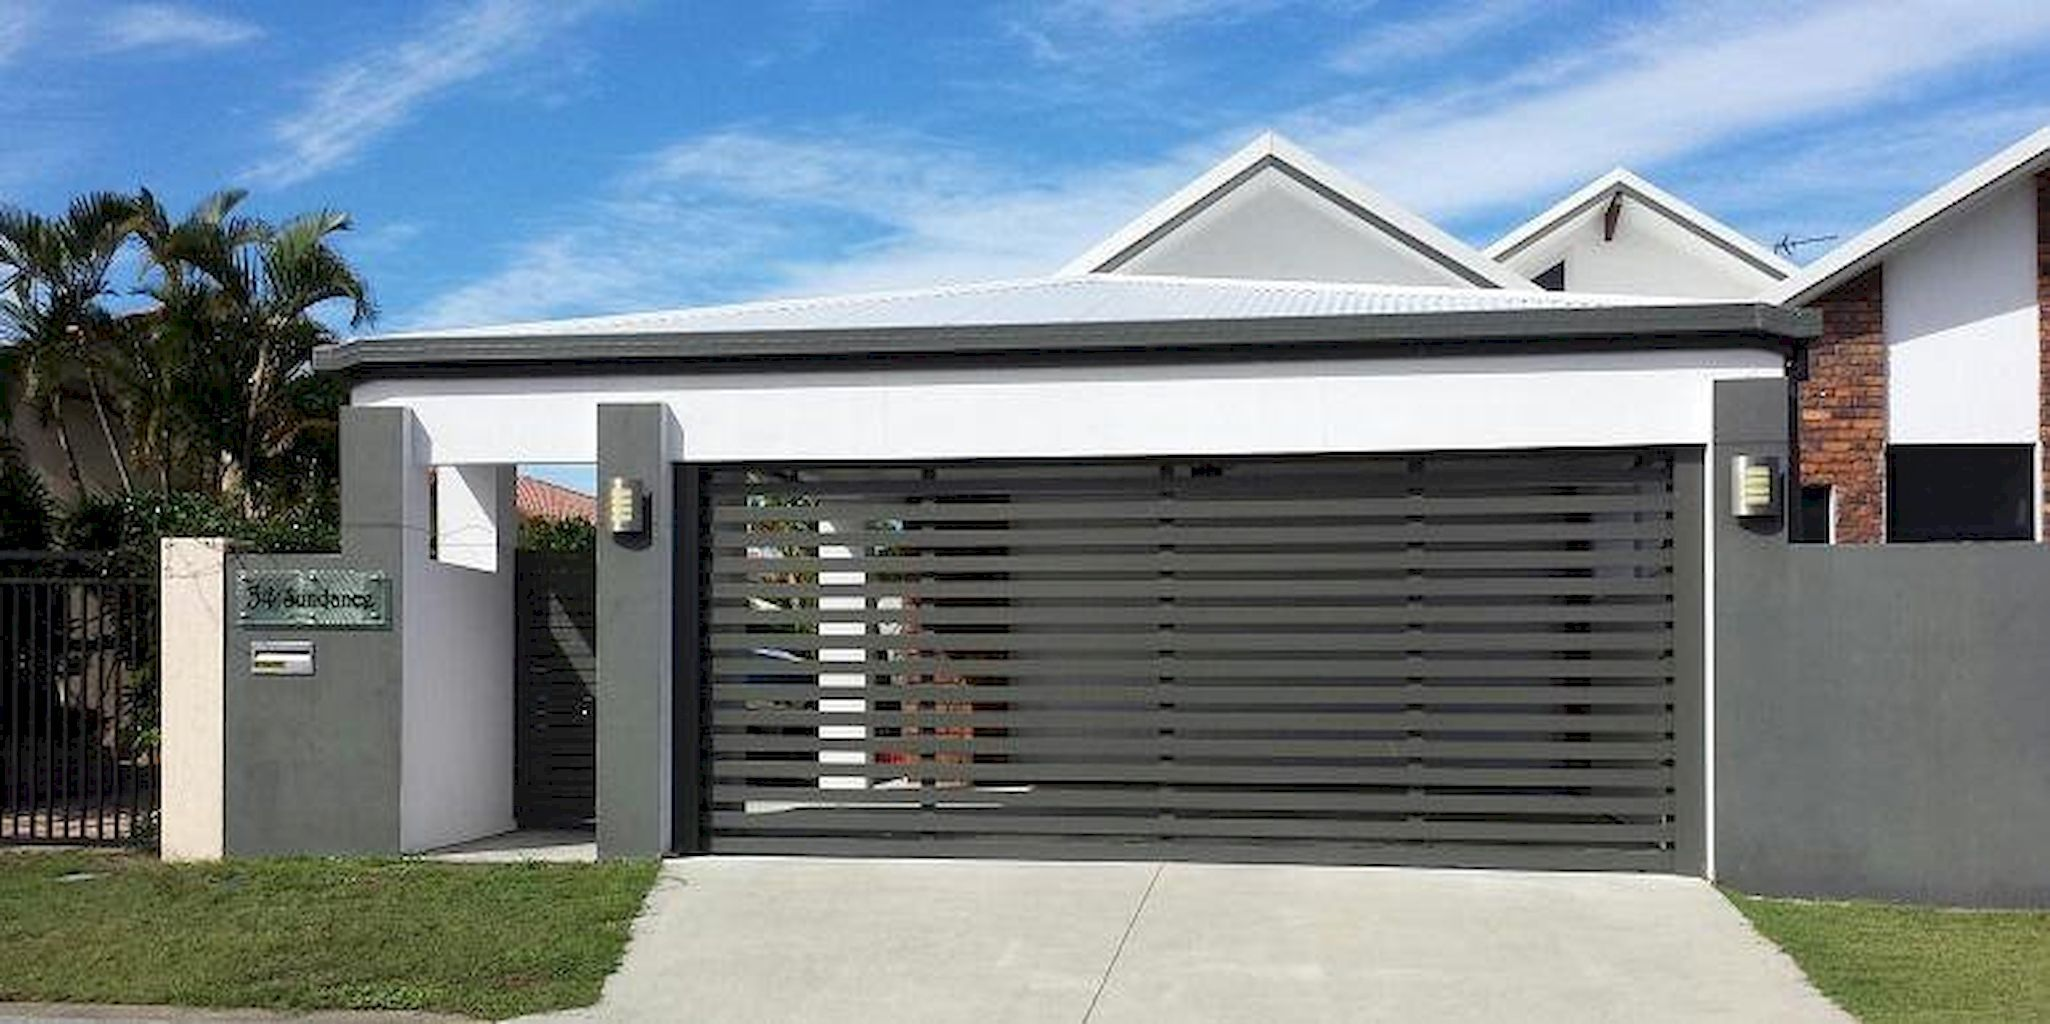 55 adorable modern carports garage designs ideas modern